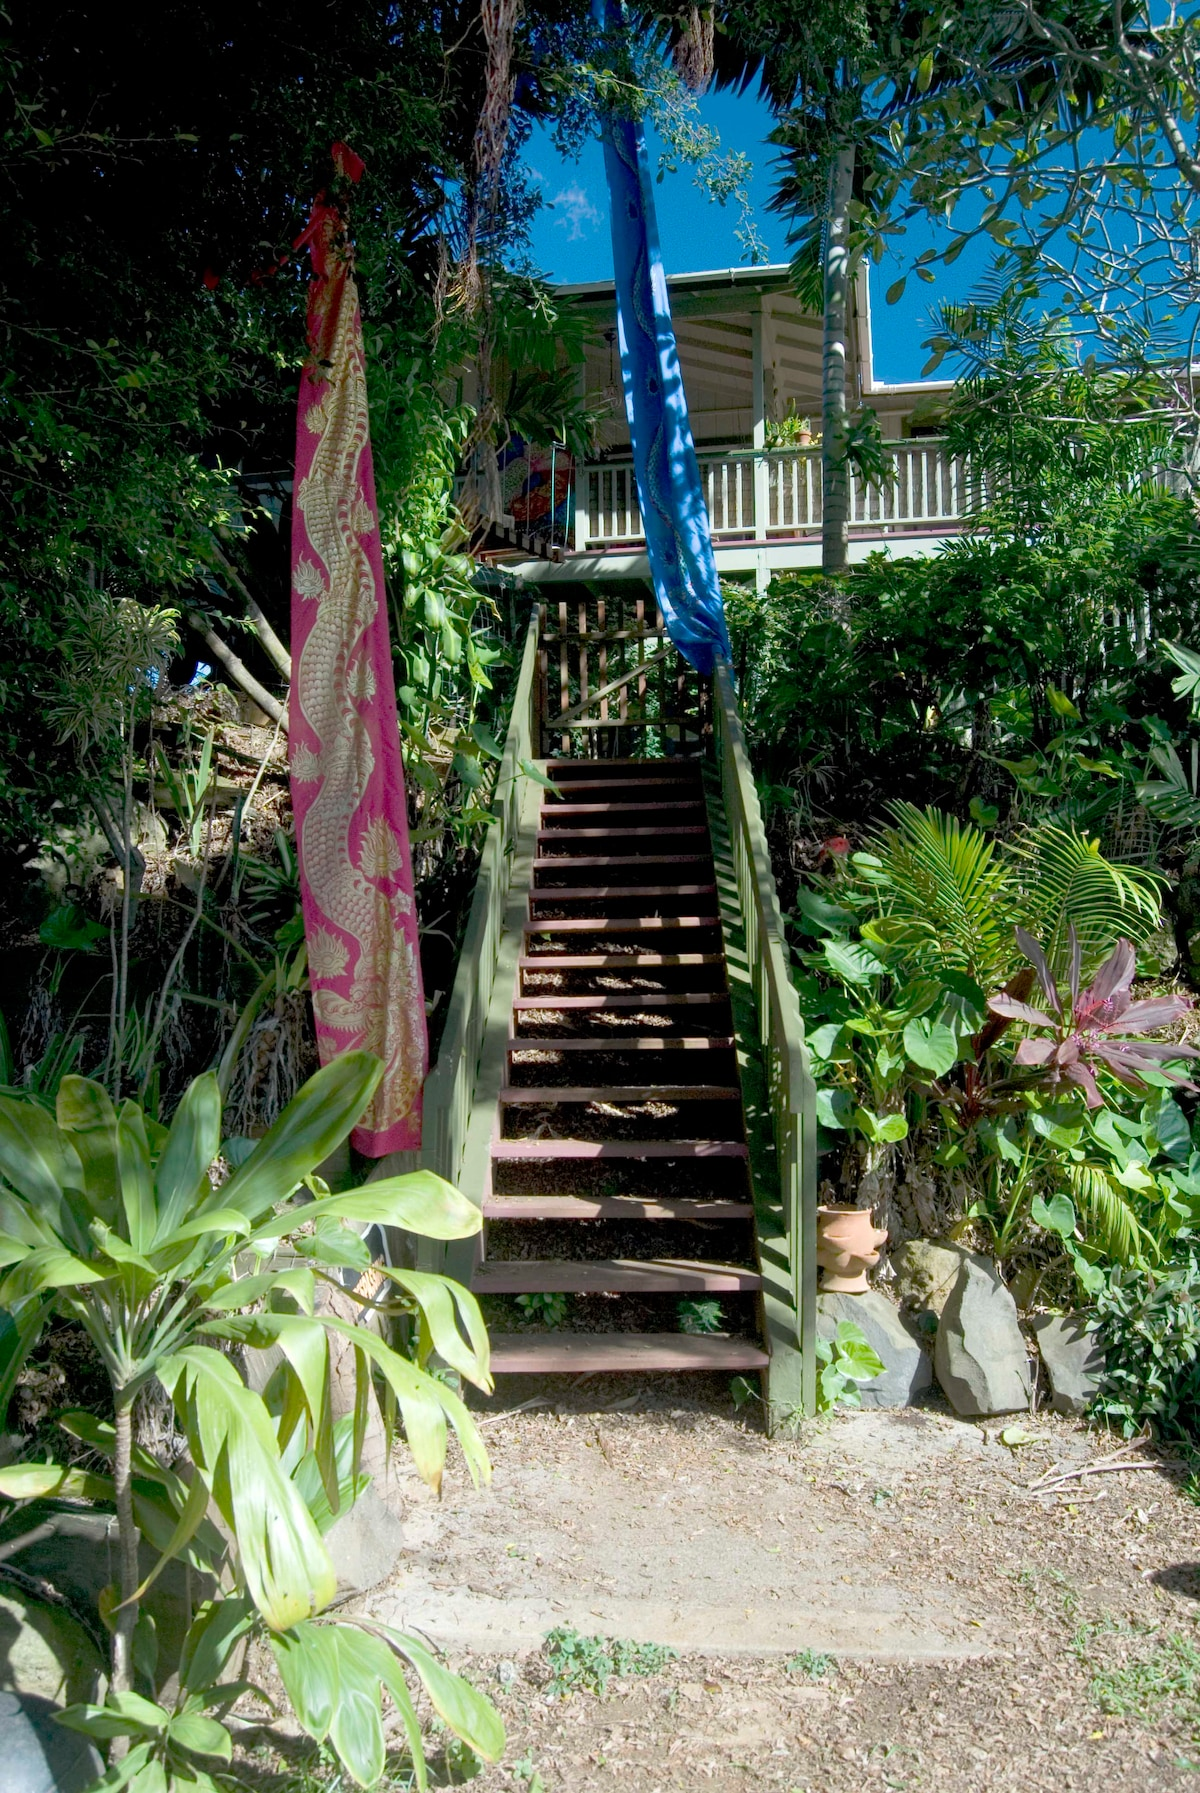 Stairway to our little tuck-in piece of Paradise:)